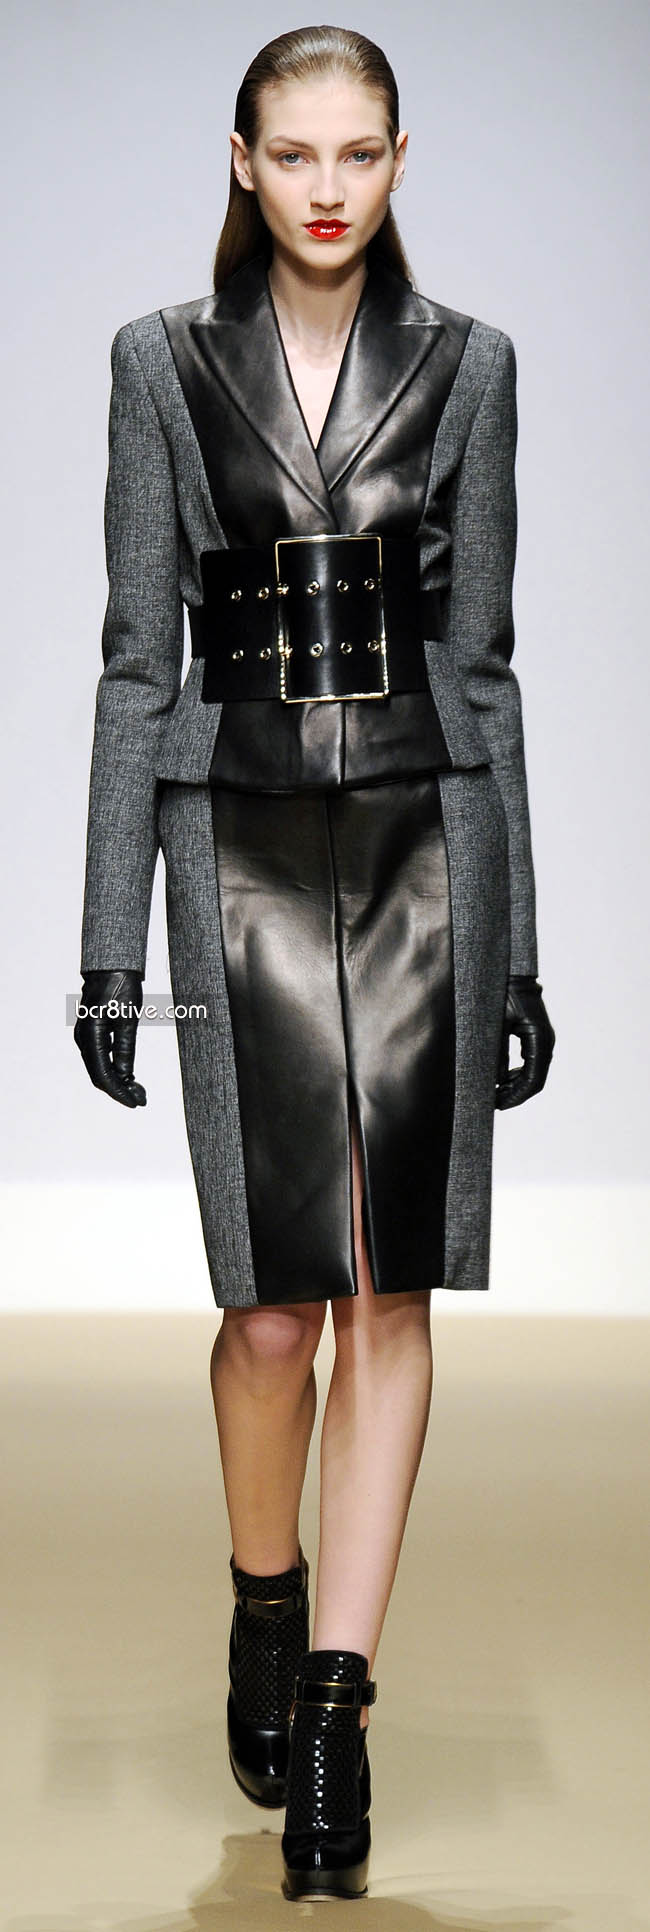 Gianfranco Ferre Fall Winter 2010